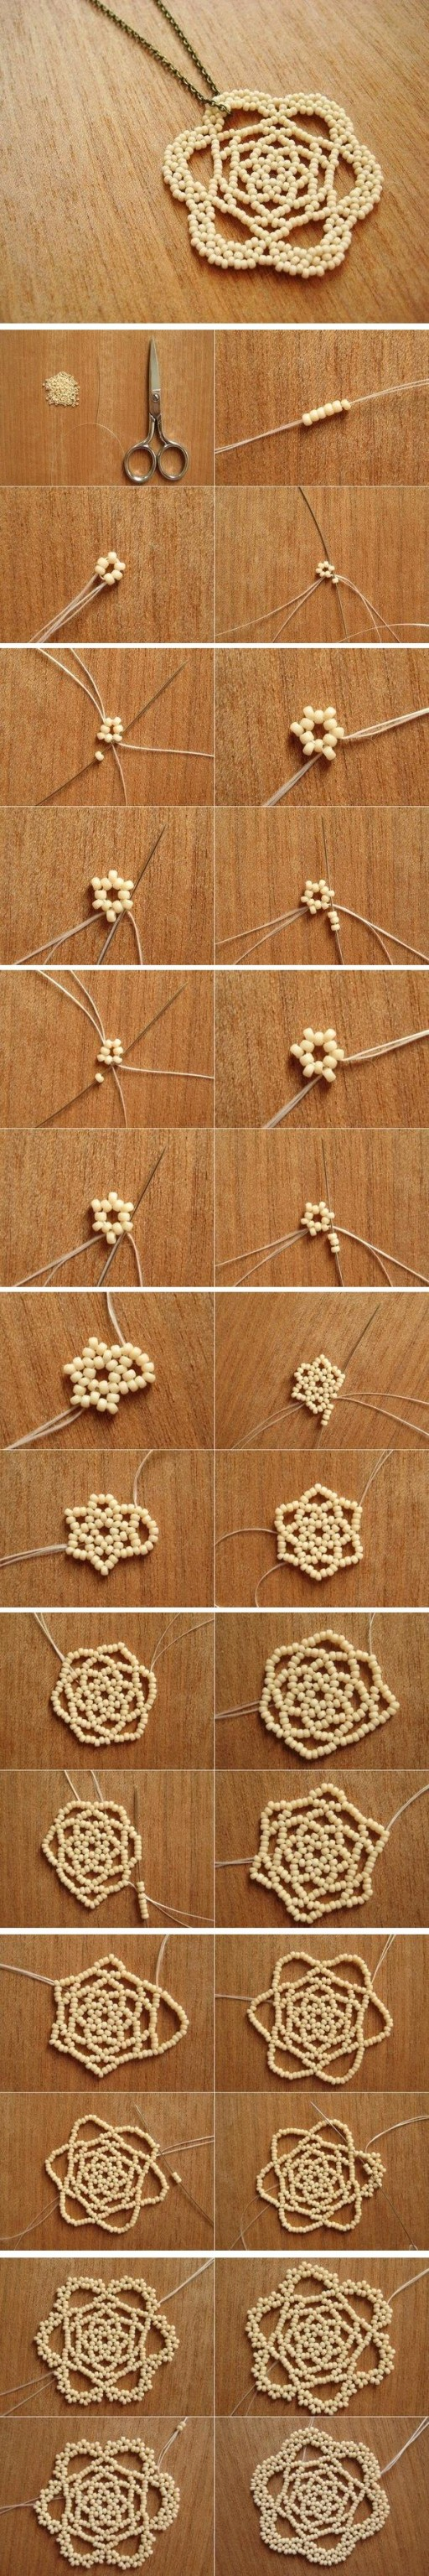 How to make beads or Pearls Flower Pendant step by step DIY tutorial instructions